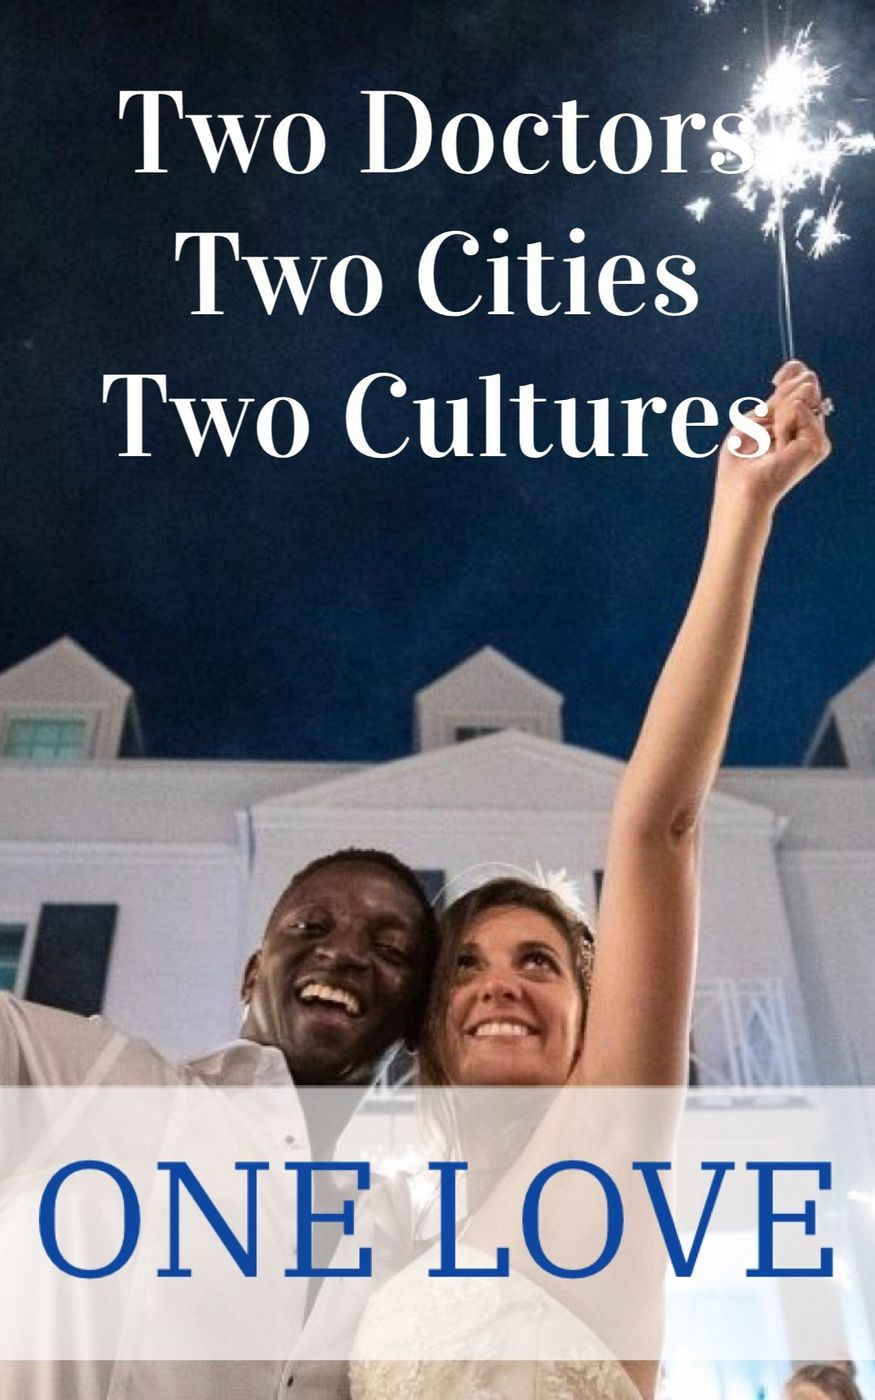 Two Doctors, Two Cities, Two Cultures, One Love